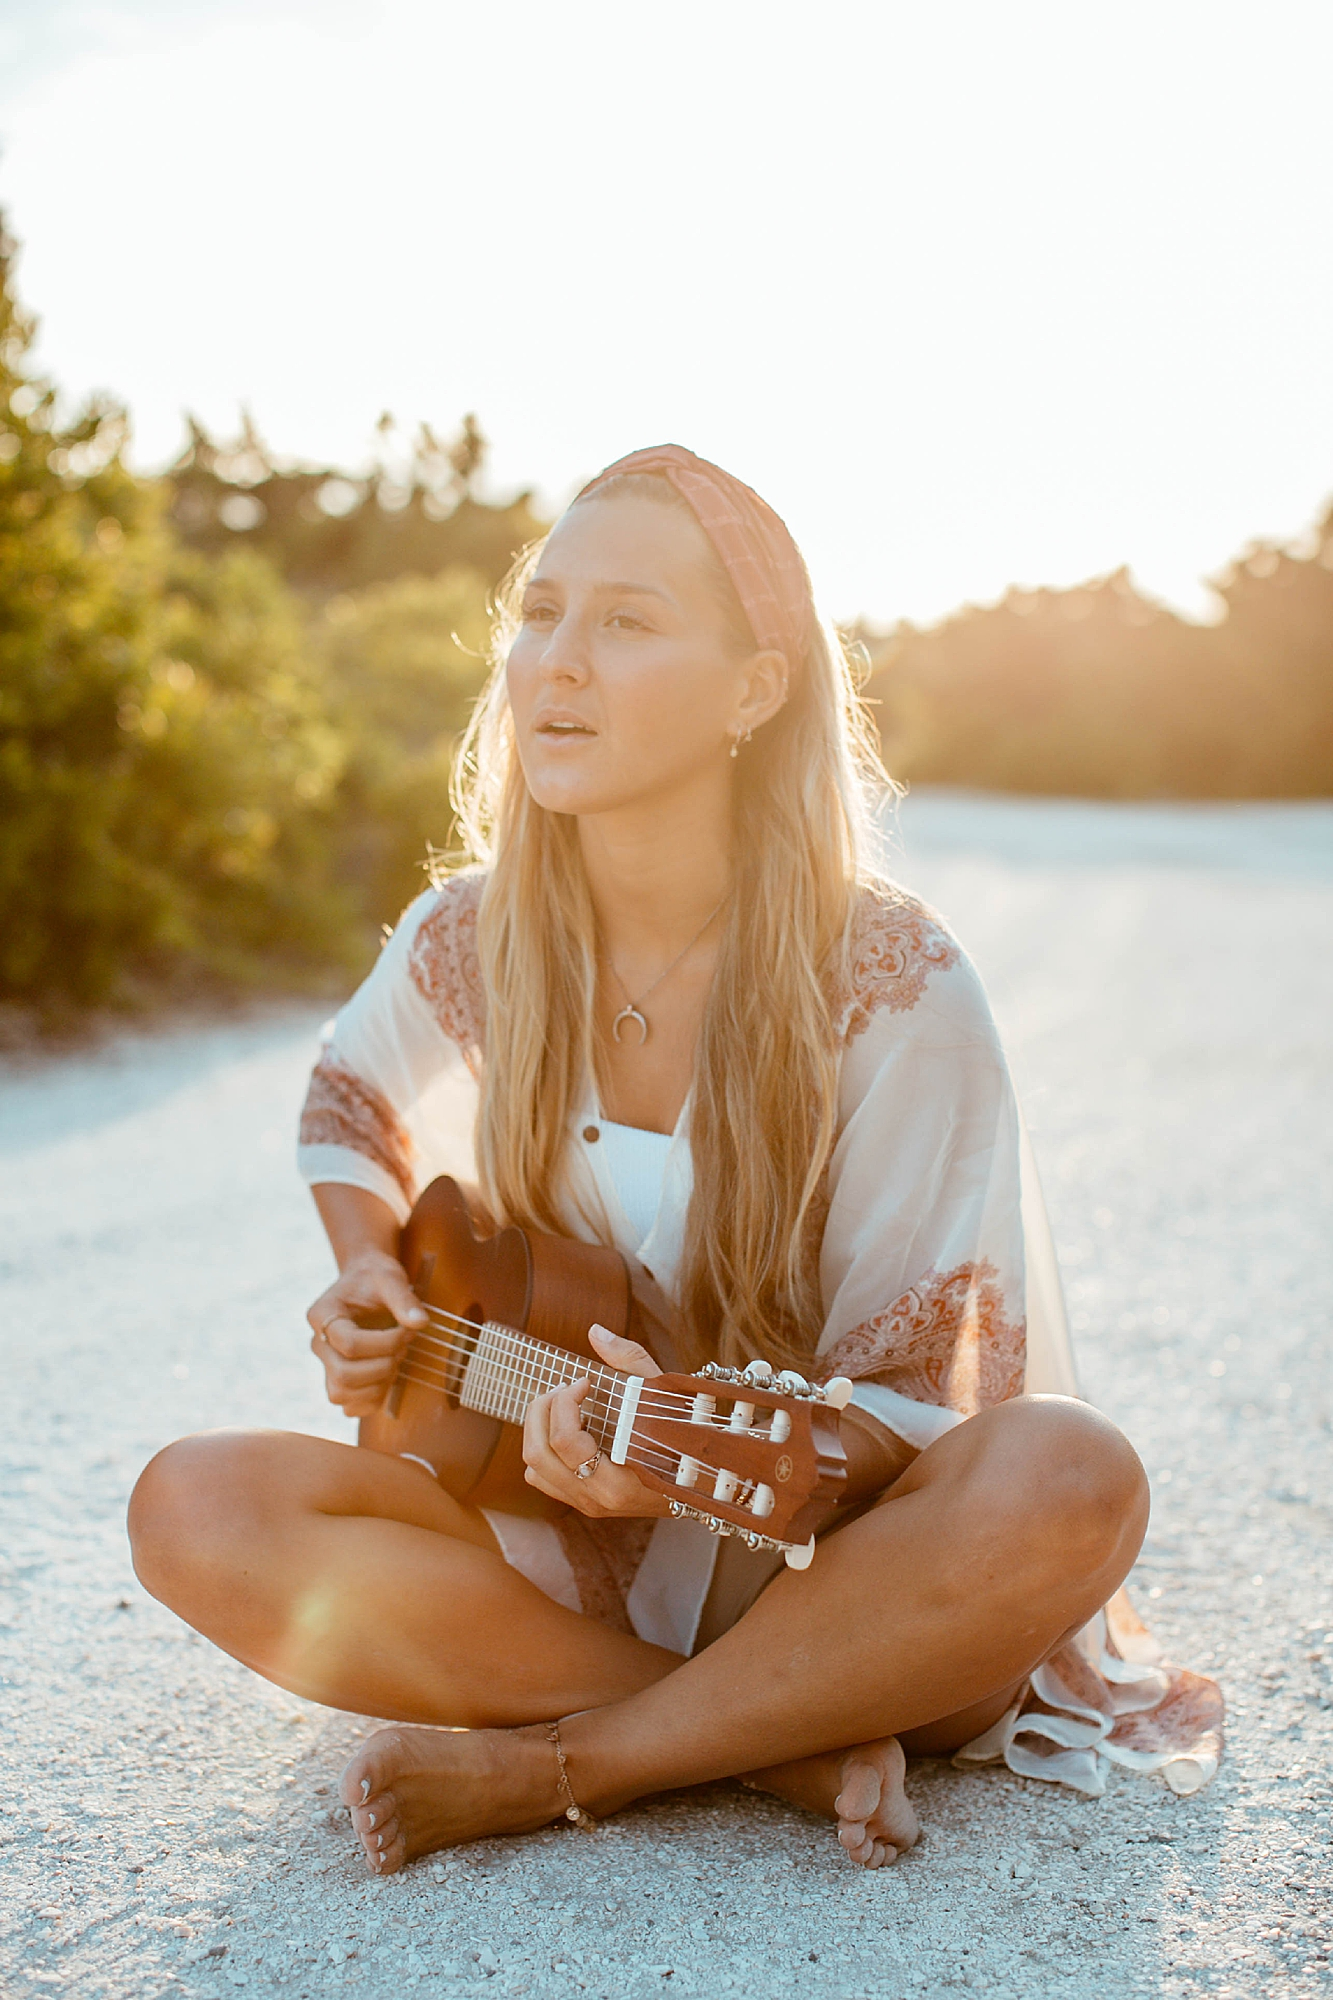 Natural and Bright Seaside Park New Jersey Boho Lifestlyle Beach Portrait Photography by Kelee Bovelle_0032.jpg